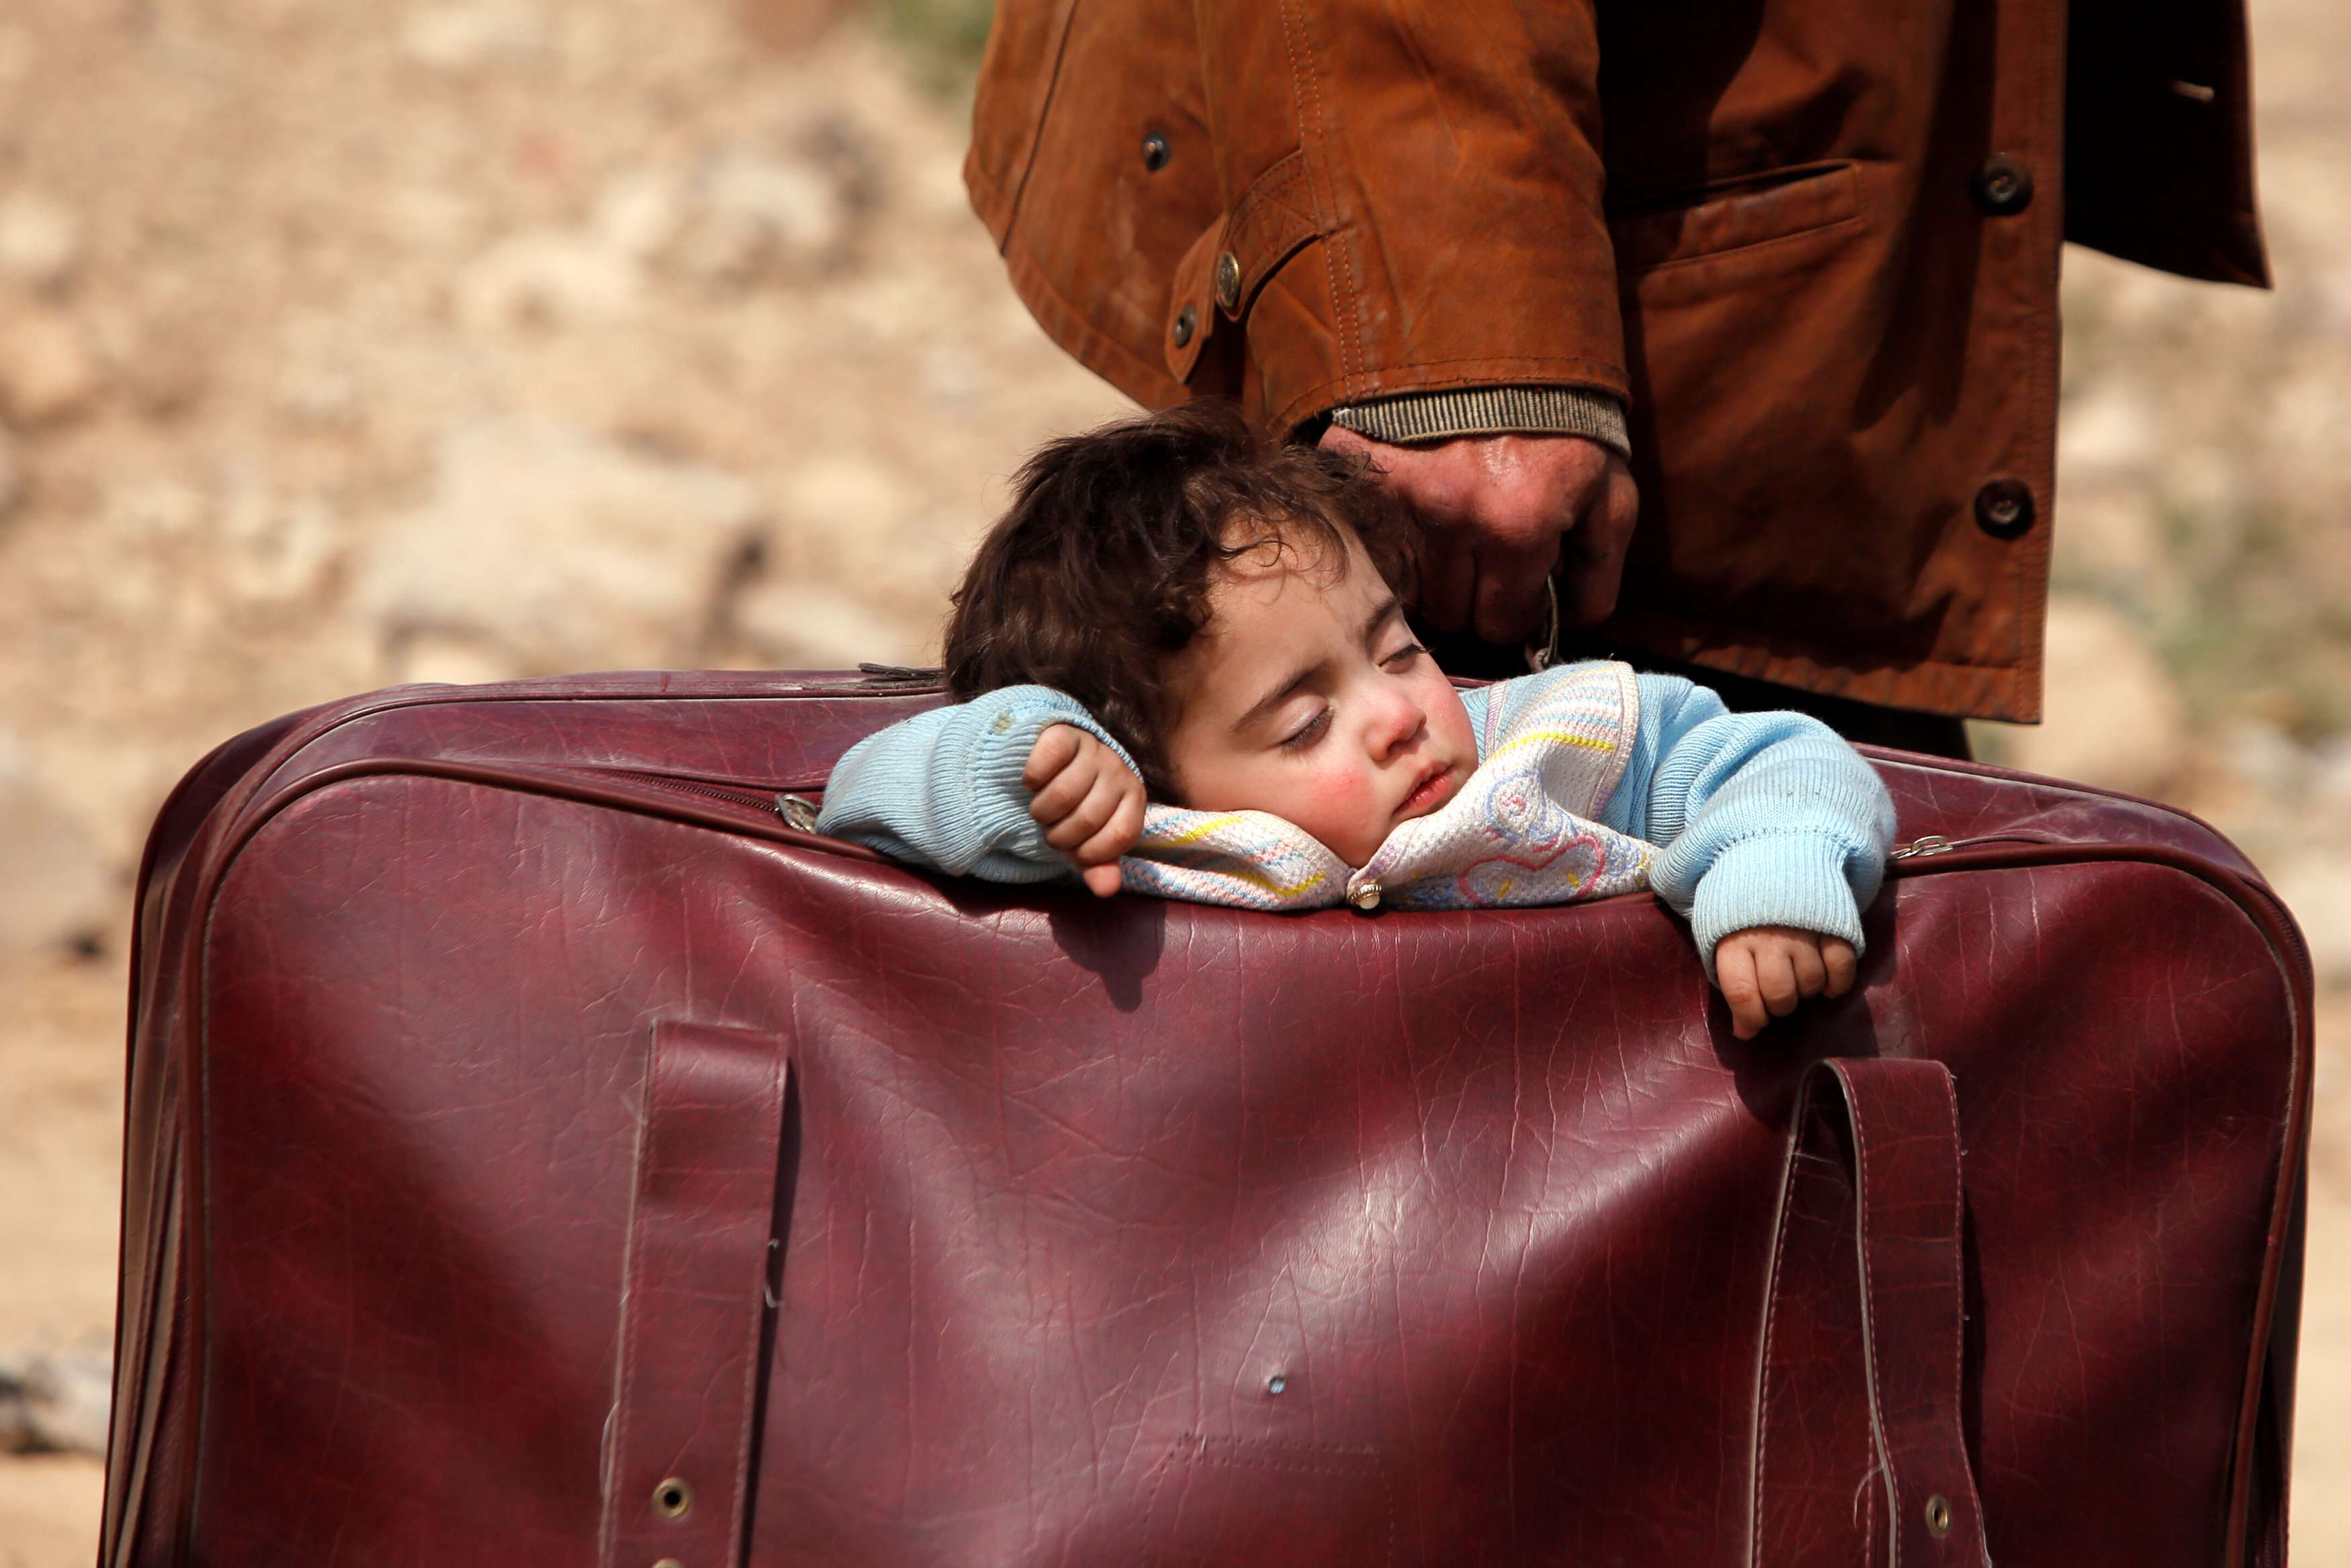 A child sleeps in a bag in the village of Beit Sawa in eastern Ghouta, on March 15. (Reuters)